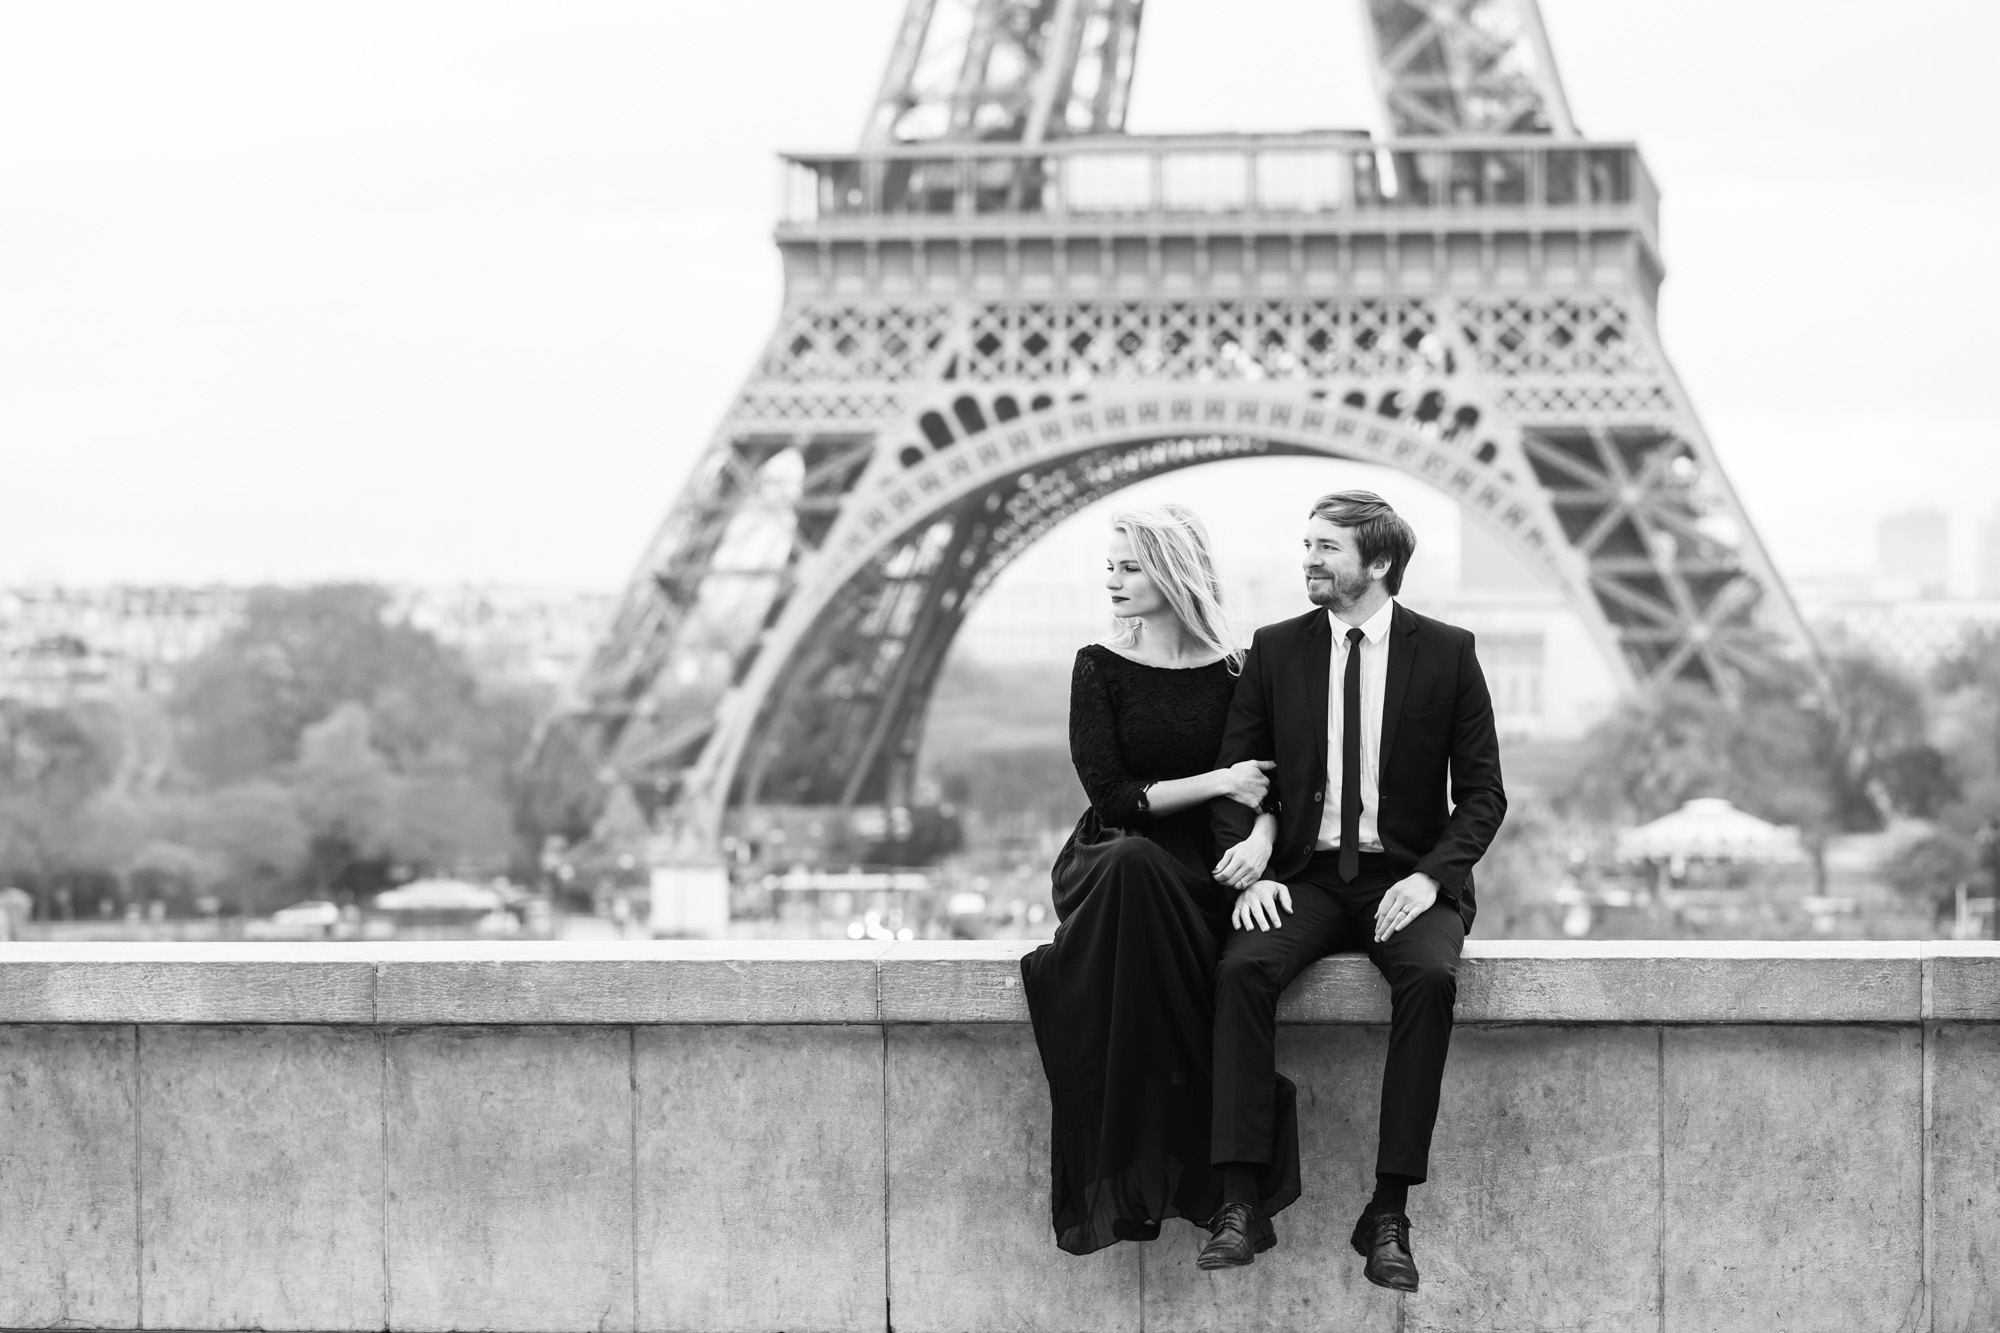 Black and white couple engagement portrait at Trocadero with the view of the Eiffel Tower captured by Paris Photographer Federico Guendel